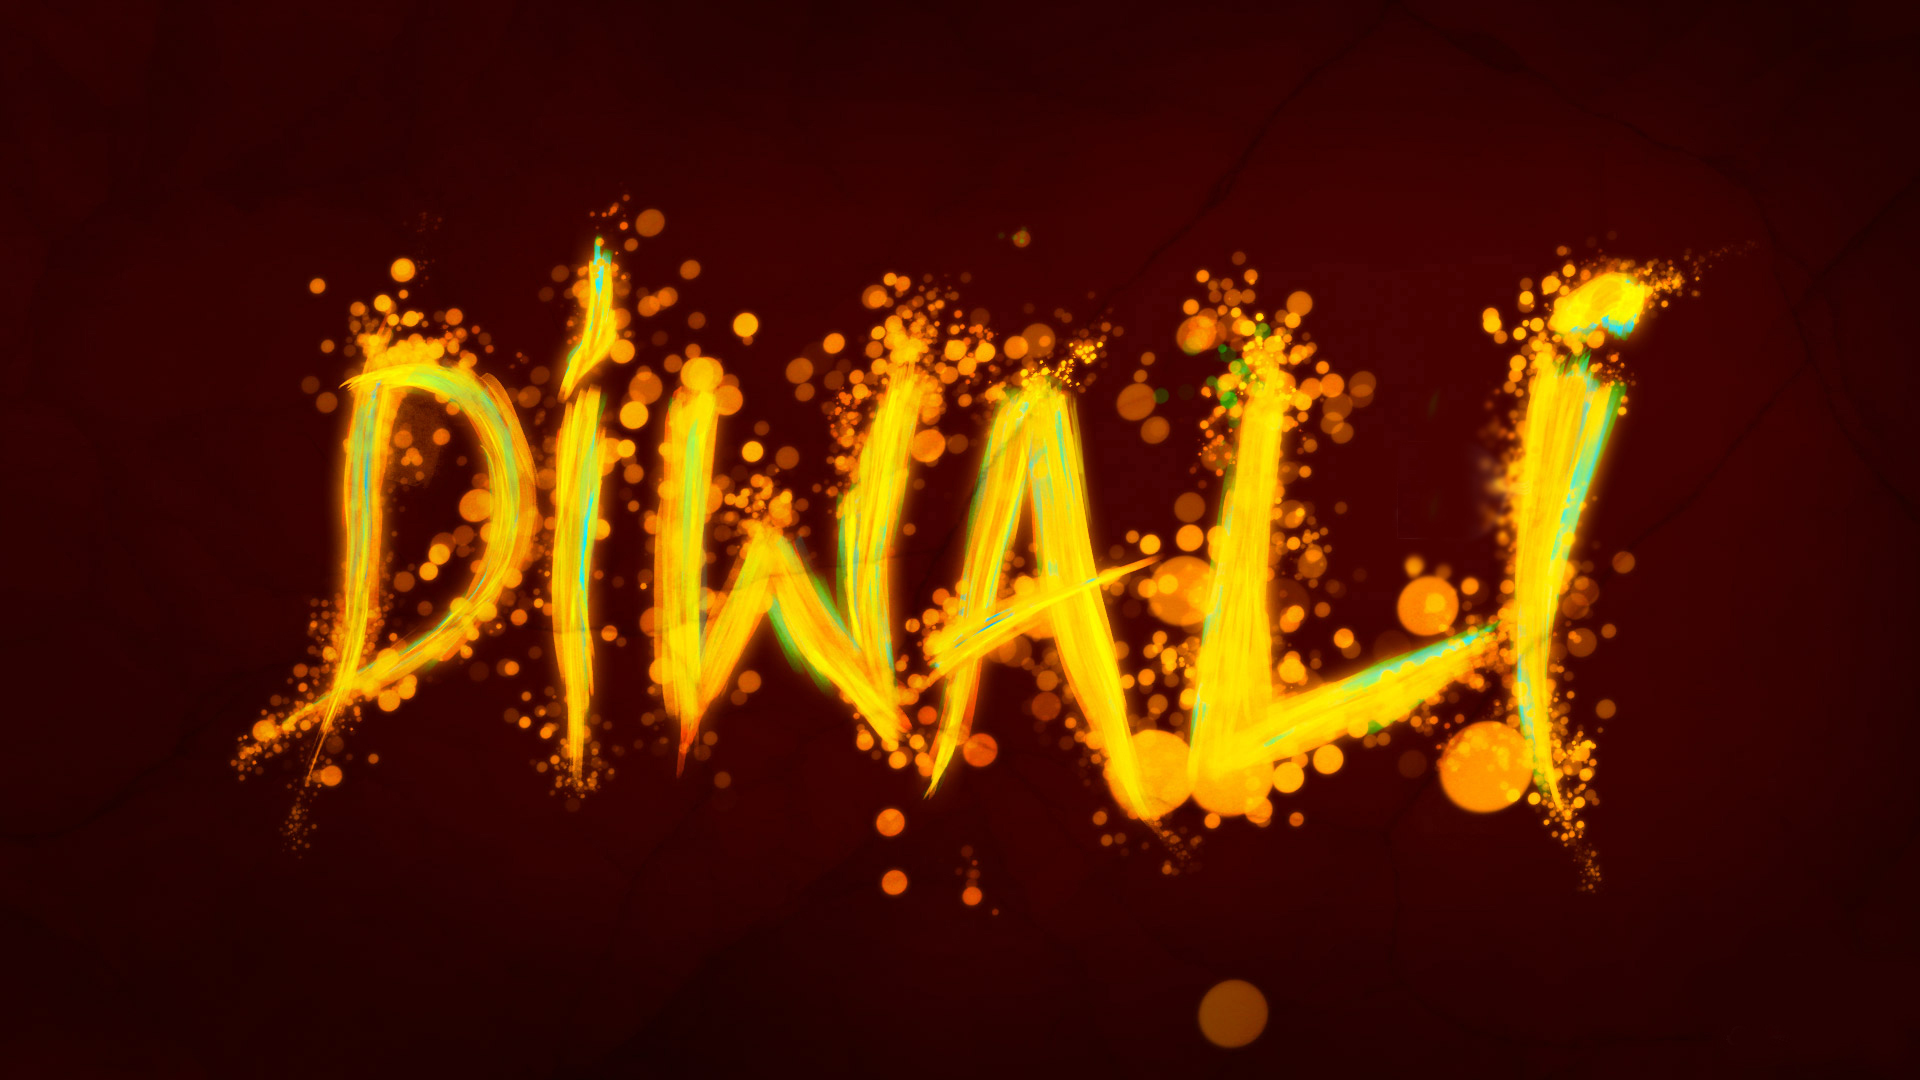 Hd Wallpaper Diwali Light Where And How To Celebrate Diwali In Beijing Oct 29 30